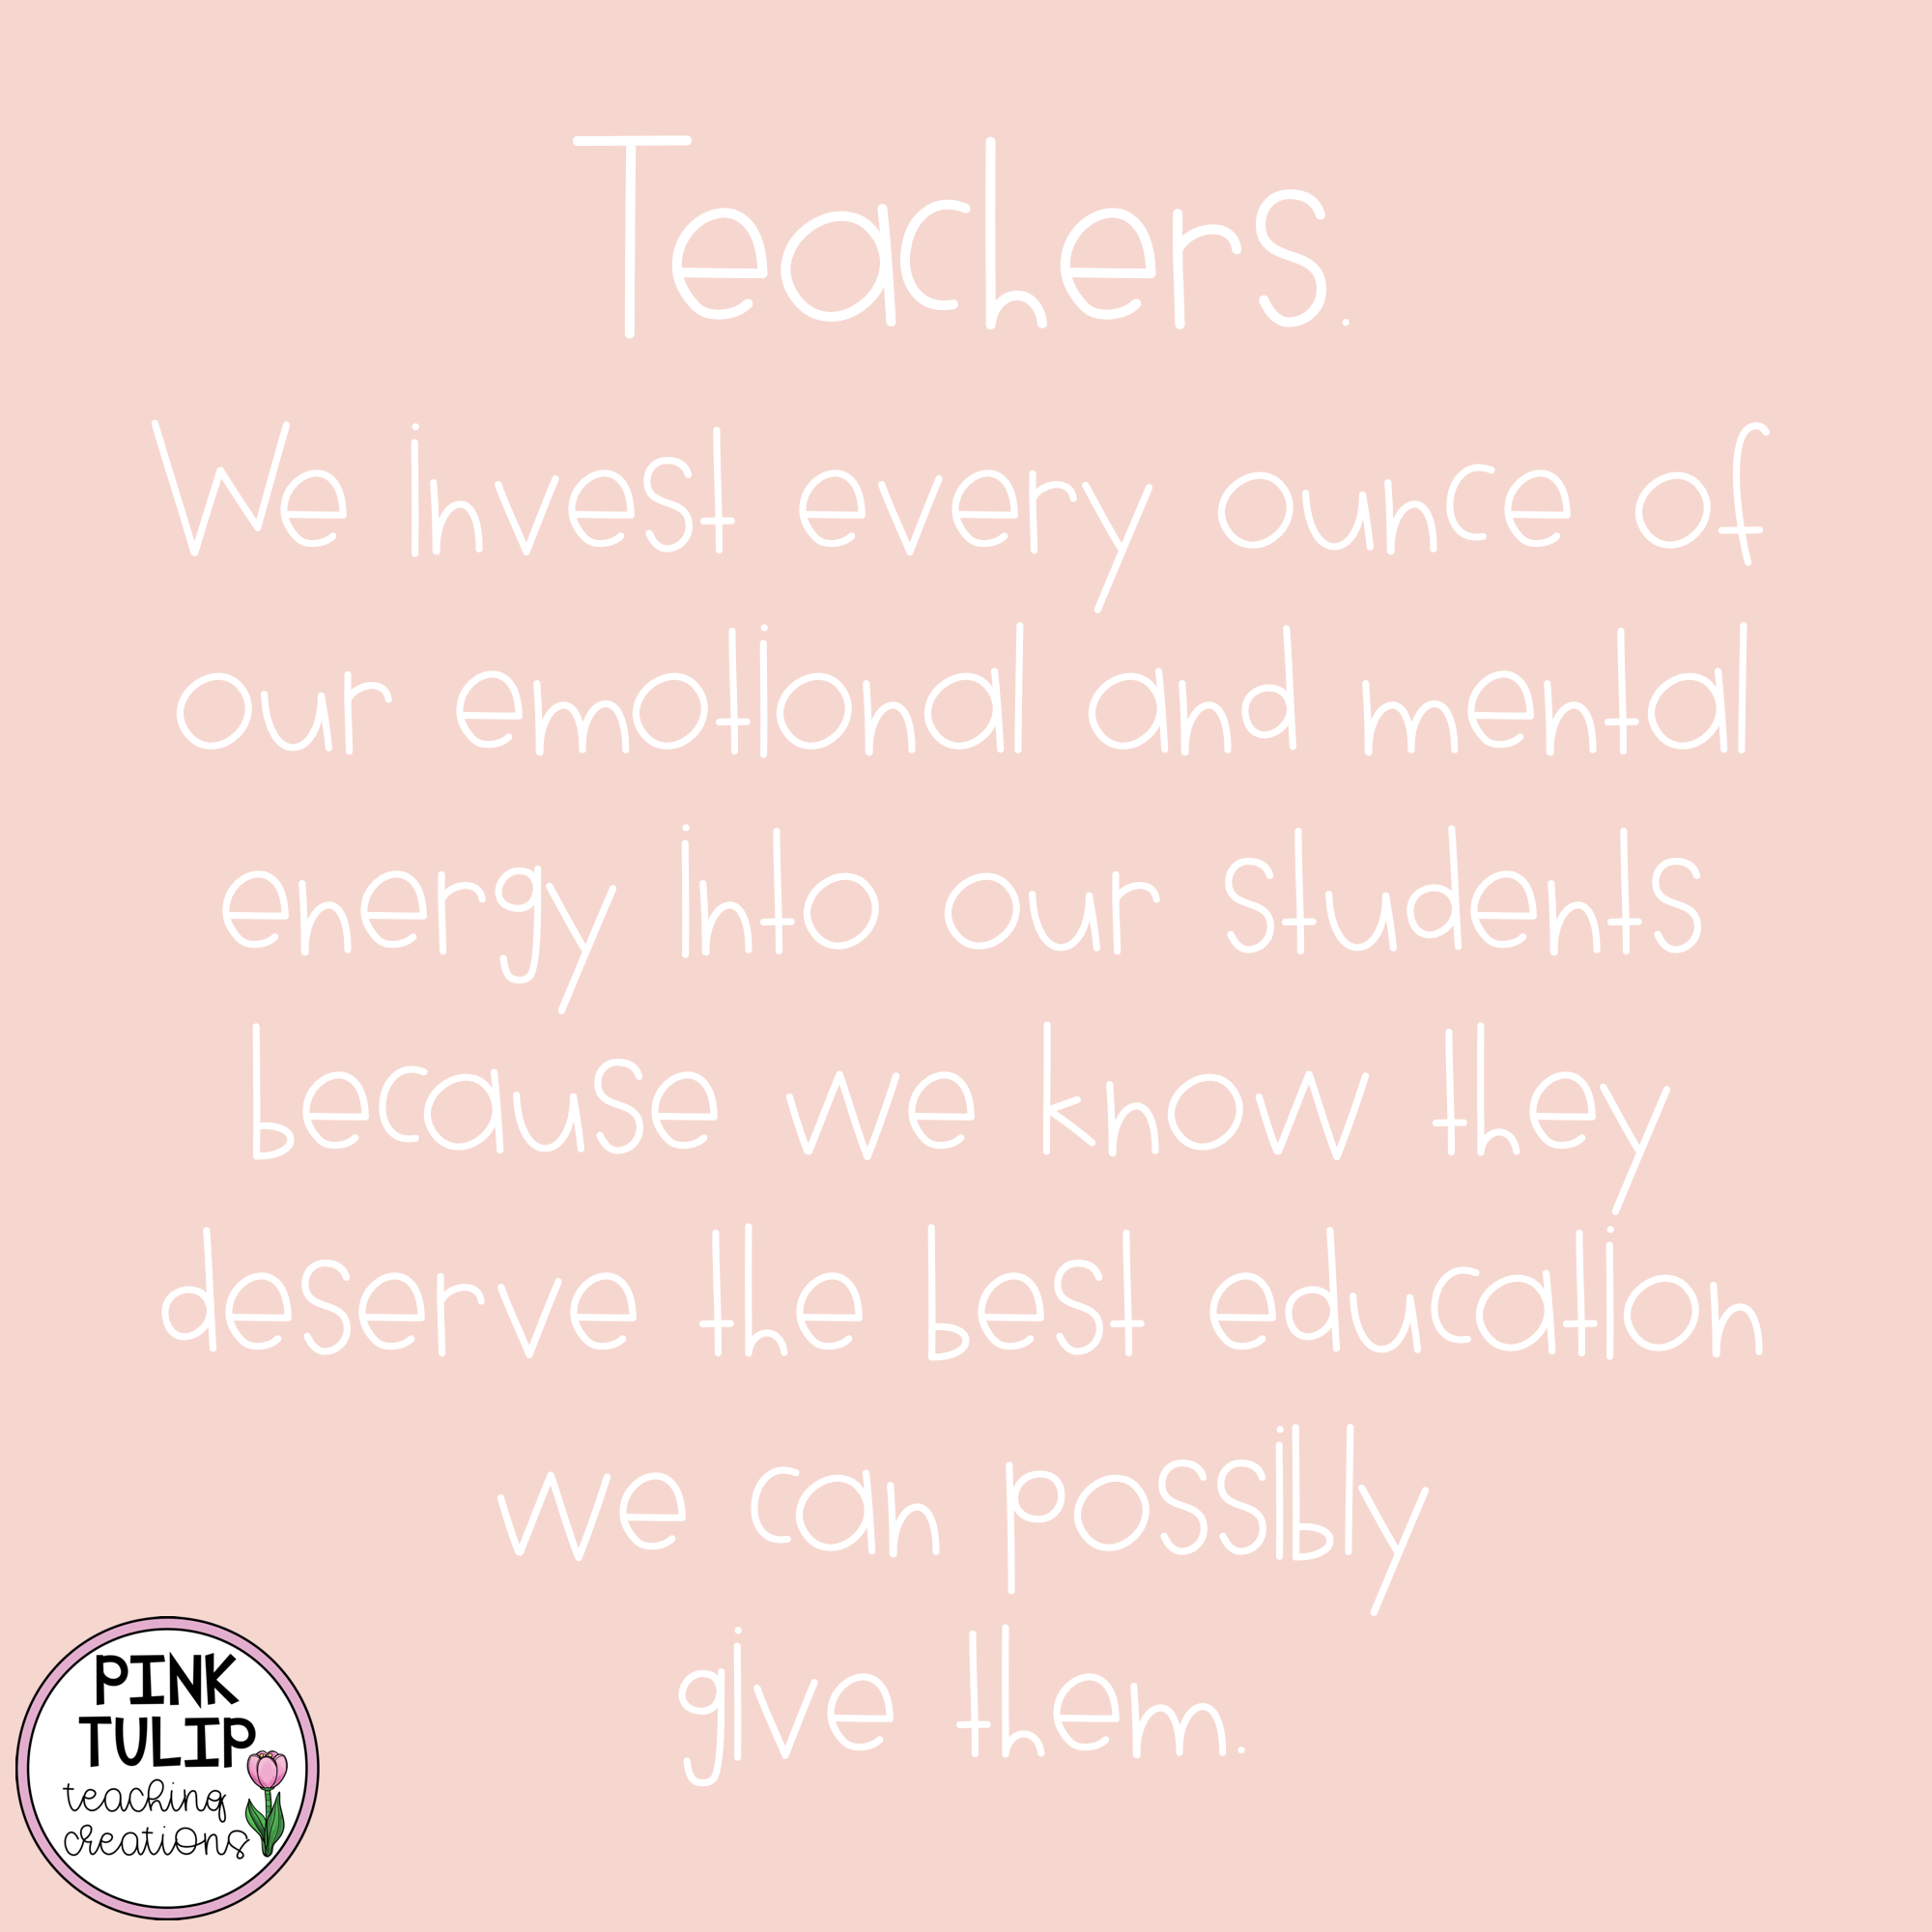 Teachers We Invest Every Ounce Of Our Emotional And